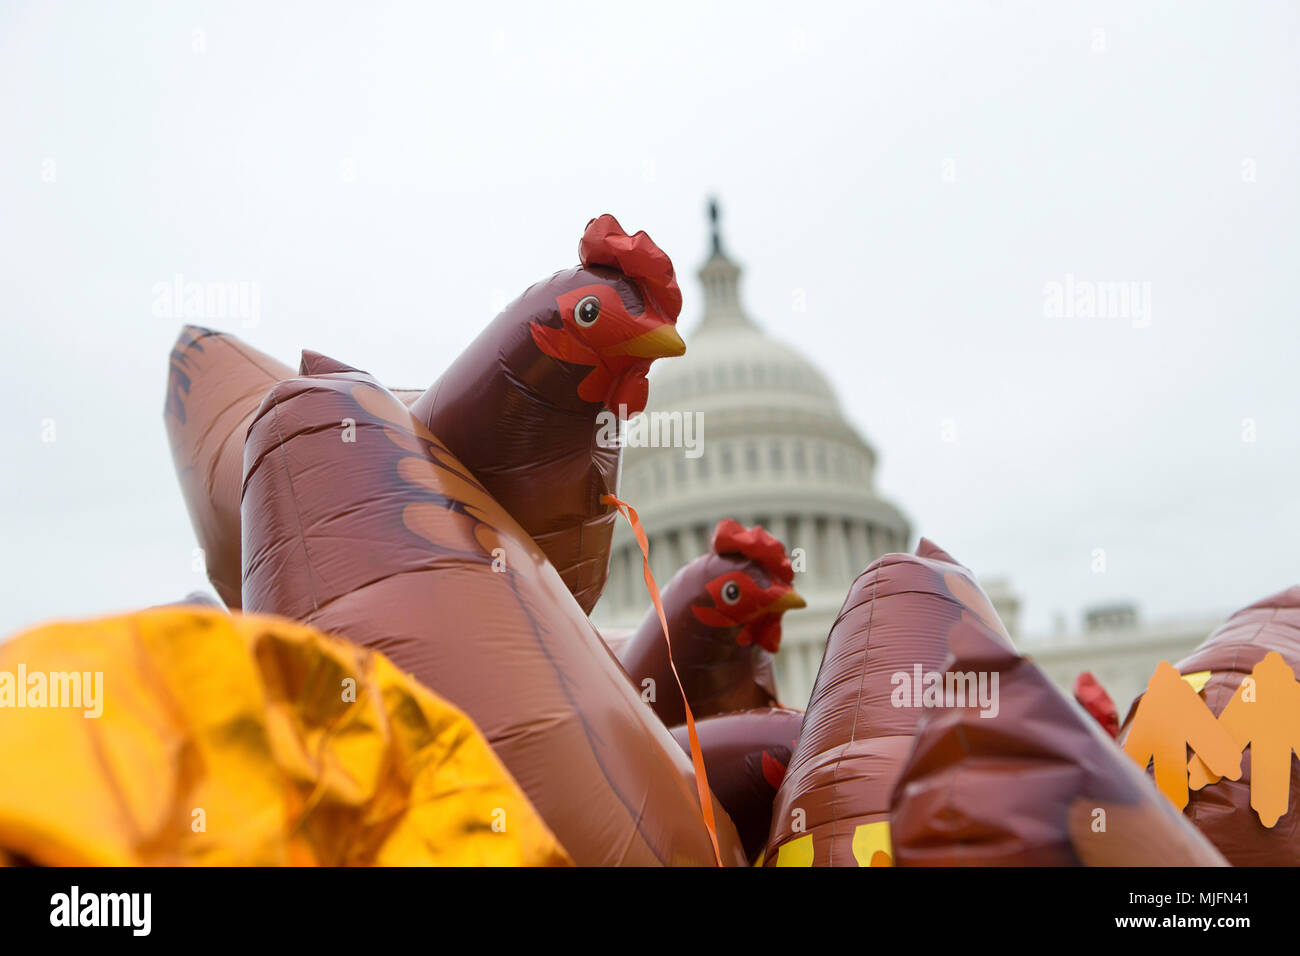 Image of: Statue Inflatable Chickens Wait For Distribution In Front Of The Us Capitol Prior To The Tax March Alamy Inflatable Trump Chicken Stock Photos Inflatable Trump Chicken